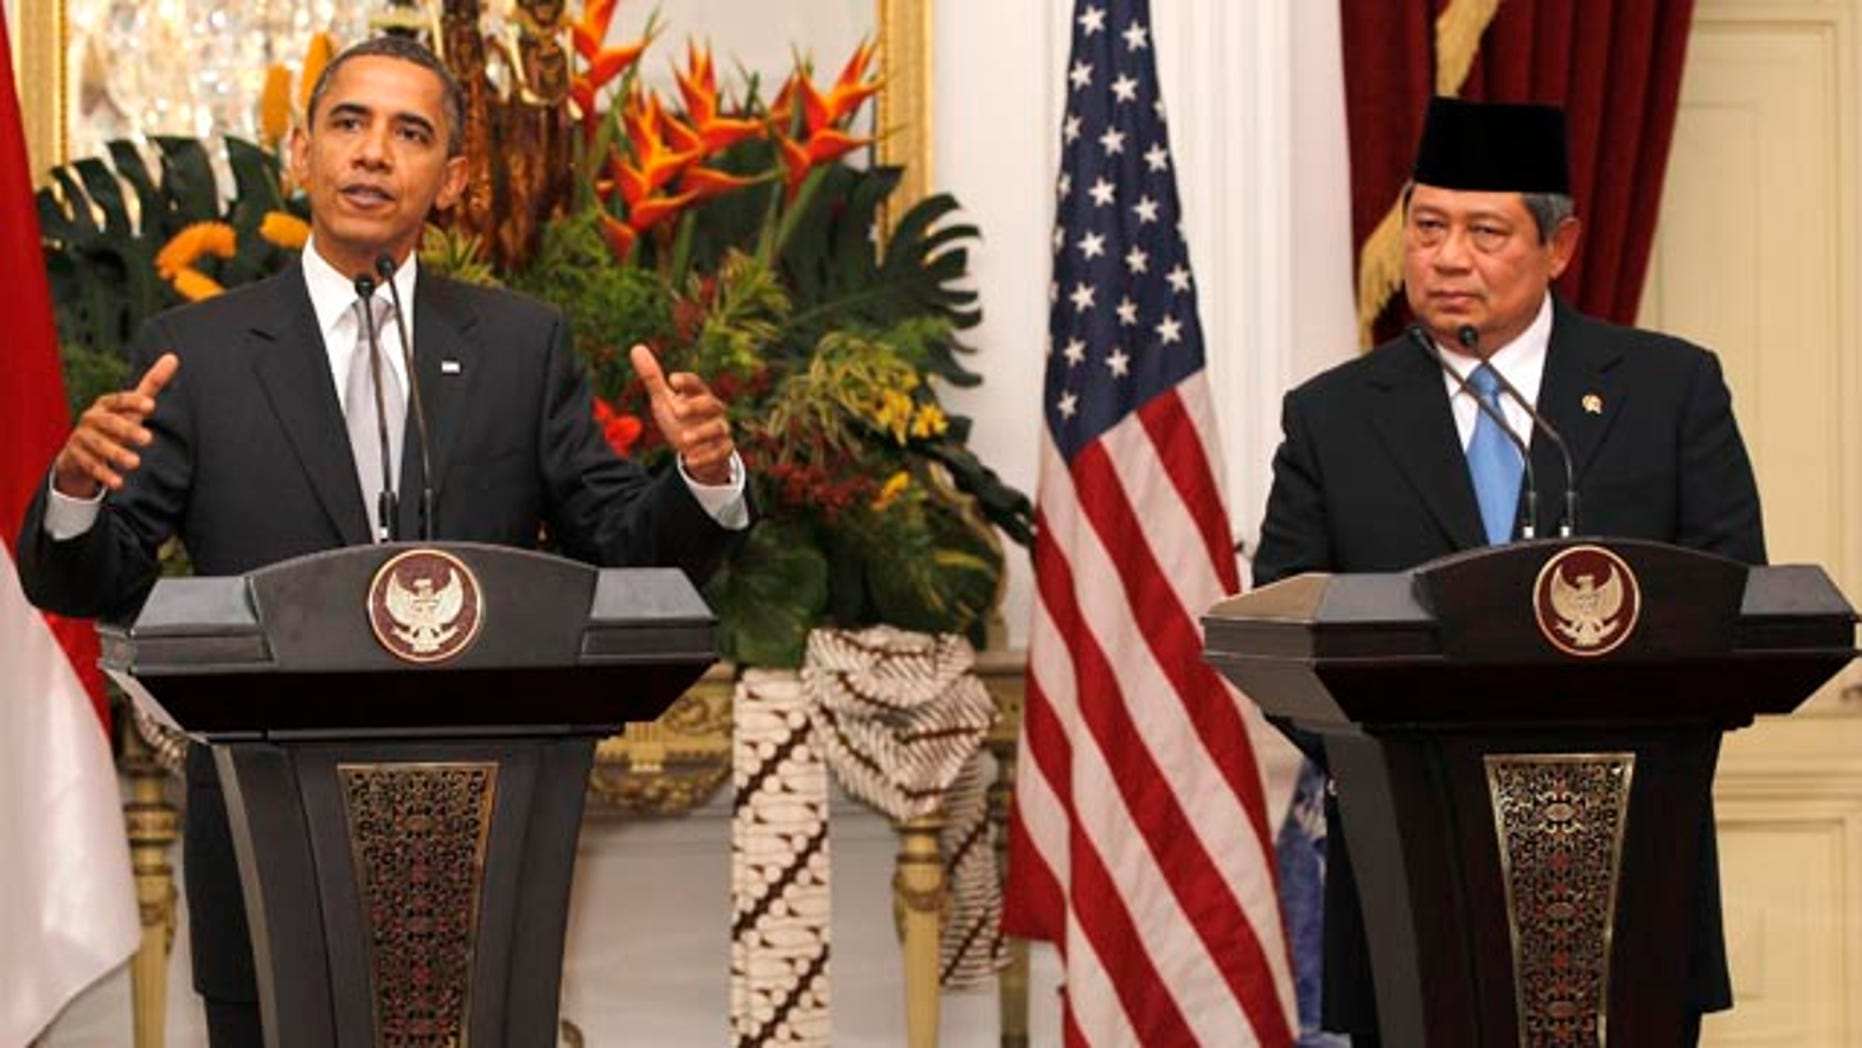 Nov. 9: Obama speaks in a news conference accompanied by his Indonesian counterpart Susilo Bambang Yudhoyono at the Merdeka palace in Jakarta, Indonesia. Obama is leaving Indonesia two hours earlier than scheduled.